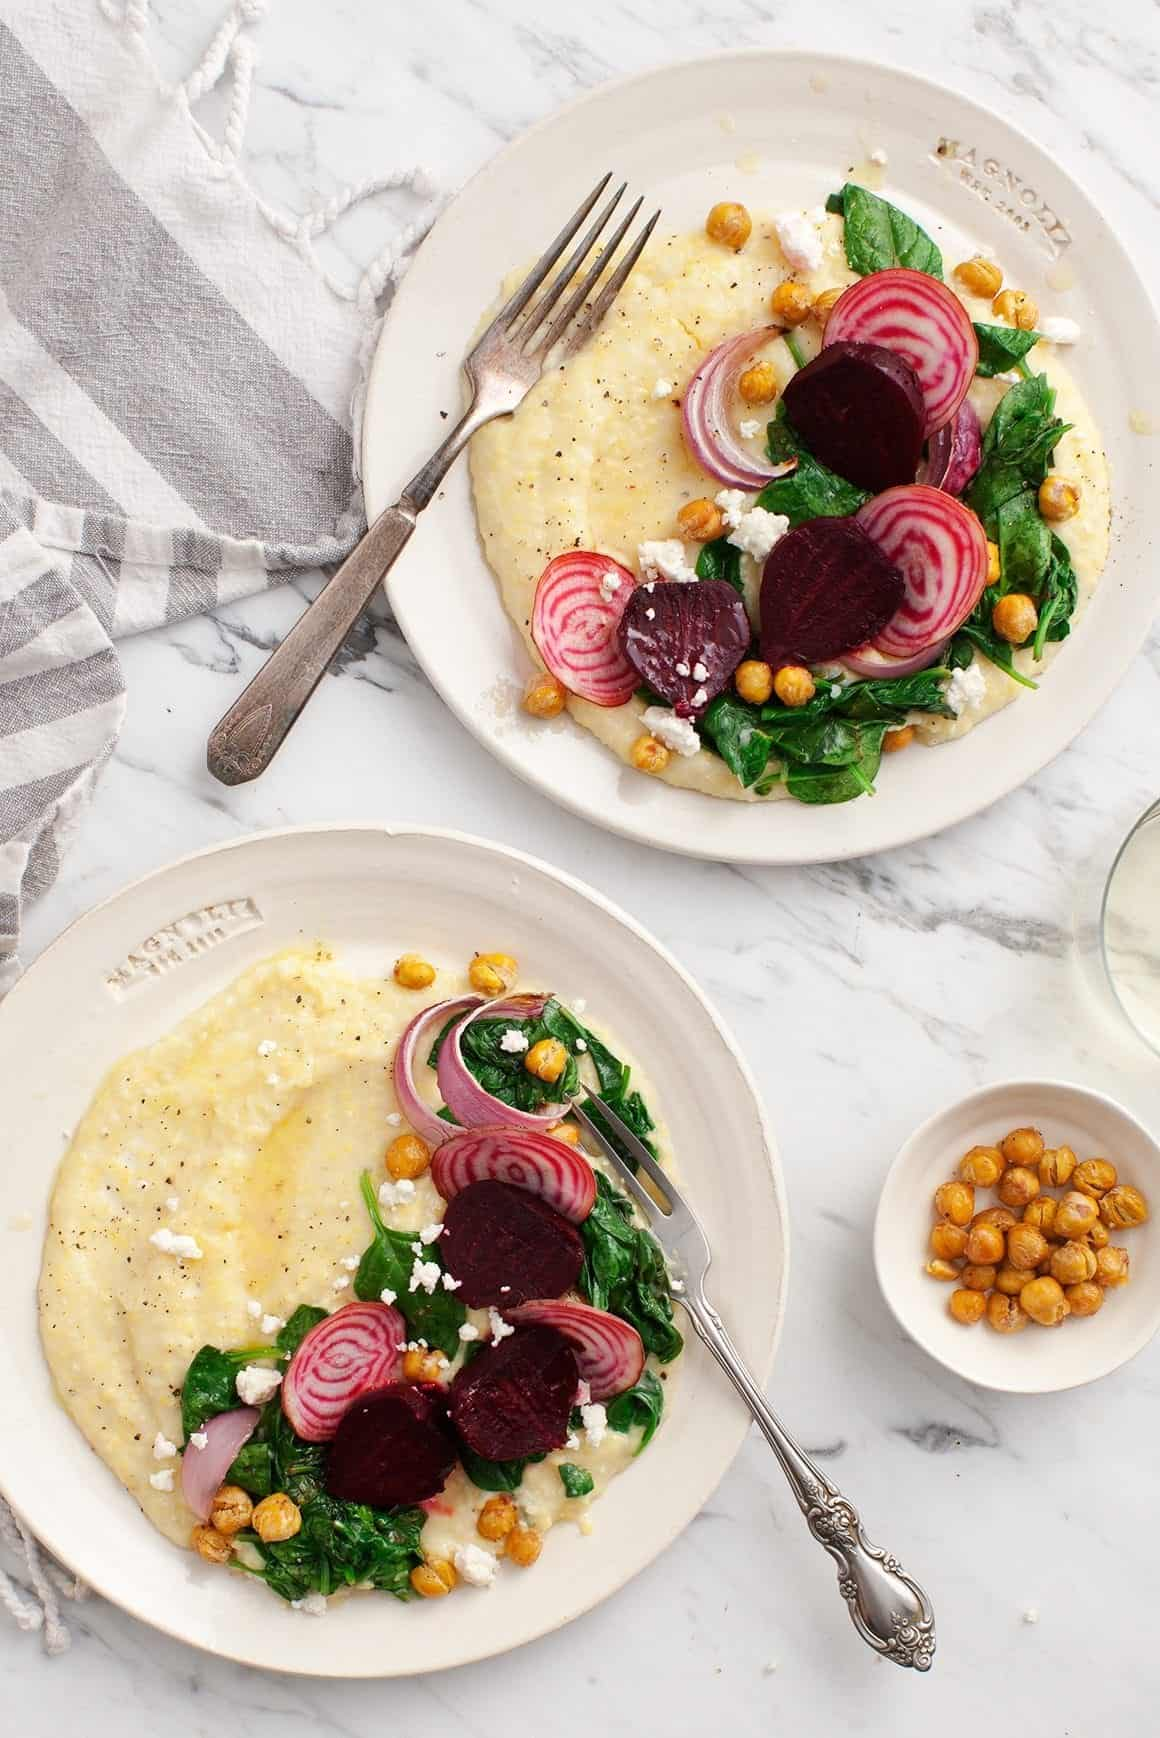 Creamy Polenta with Roasted Beets